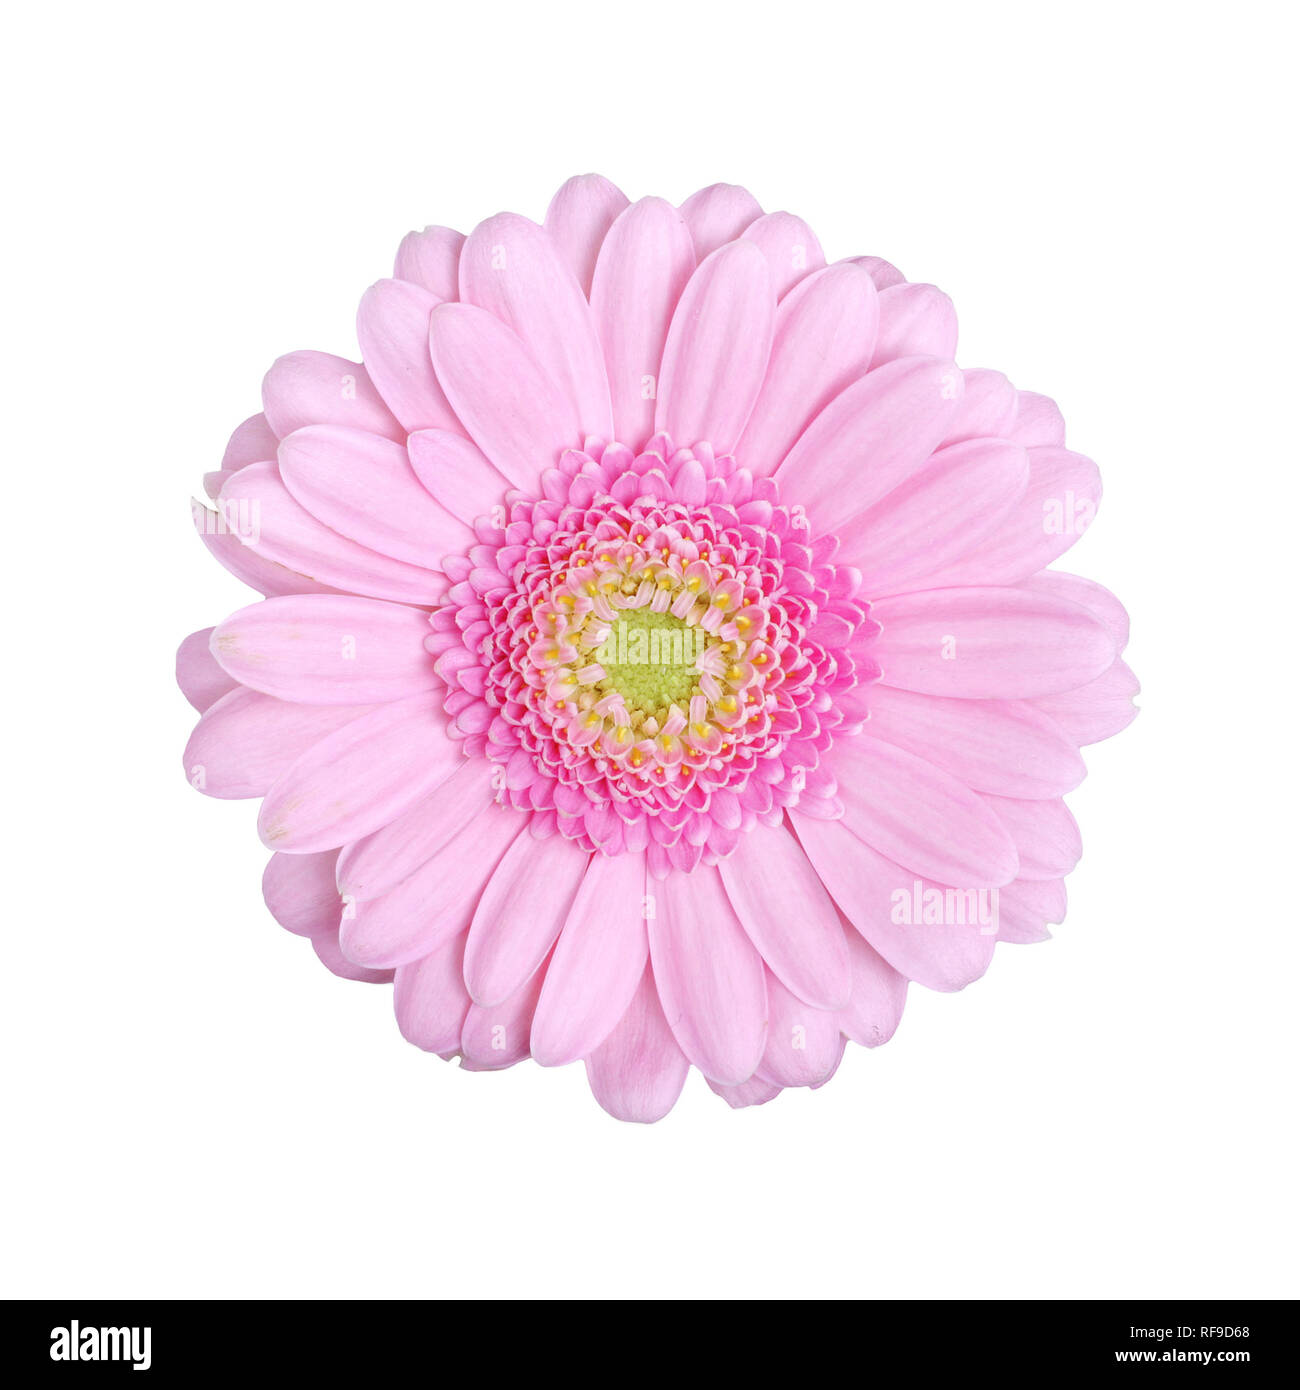 One gerbera flower isolated on white - Stock Image